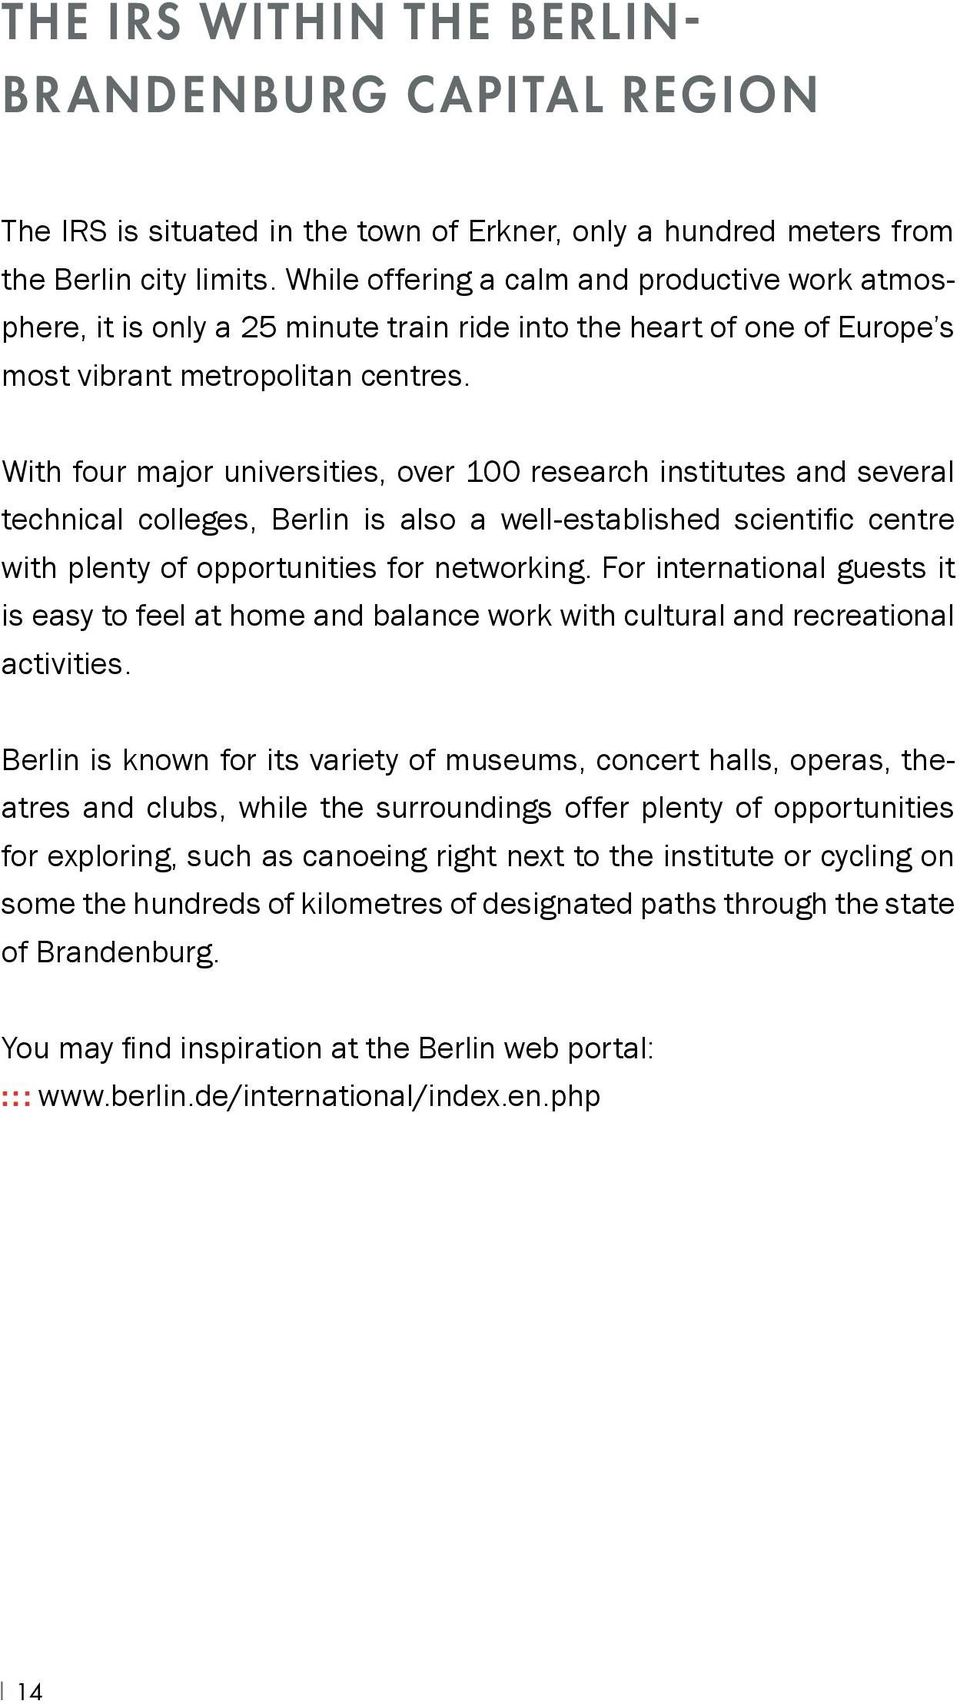 With four major universities, over 100 research institutes and several technical colleges, Berlin is also a well-established scientific centre with plenty of opportunities for networking.